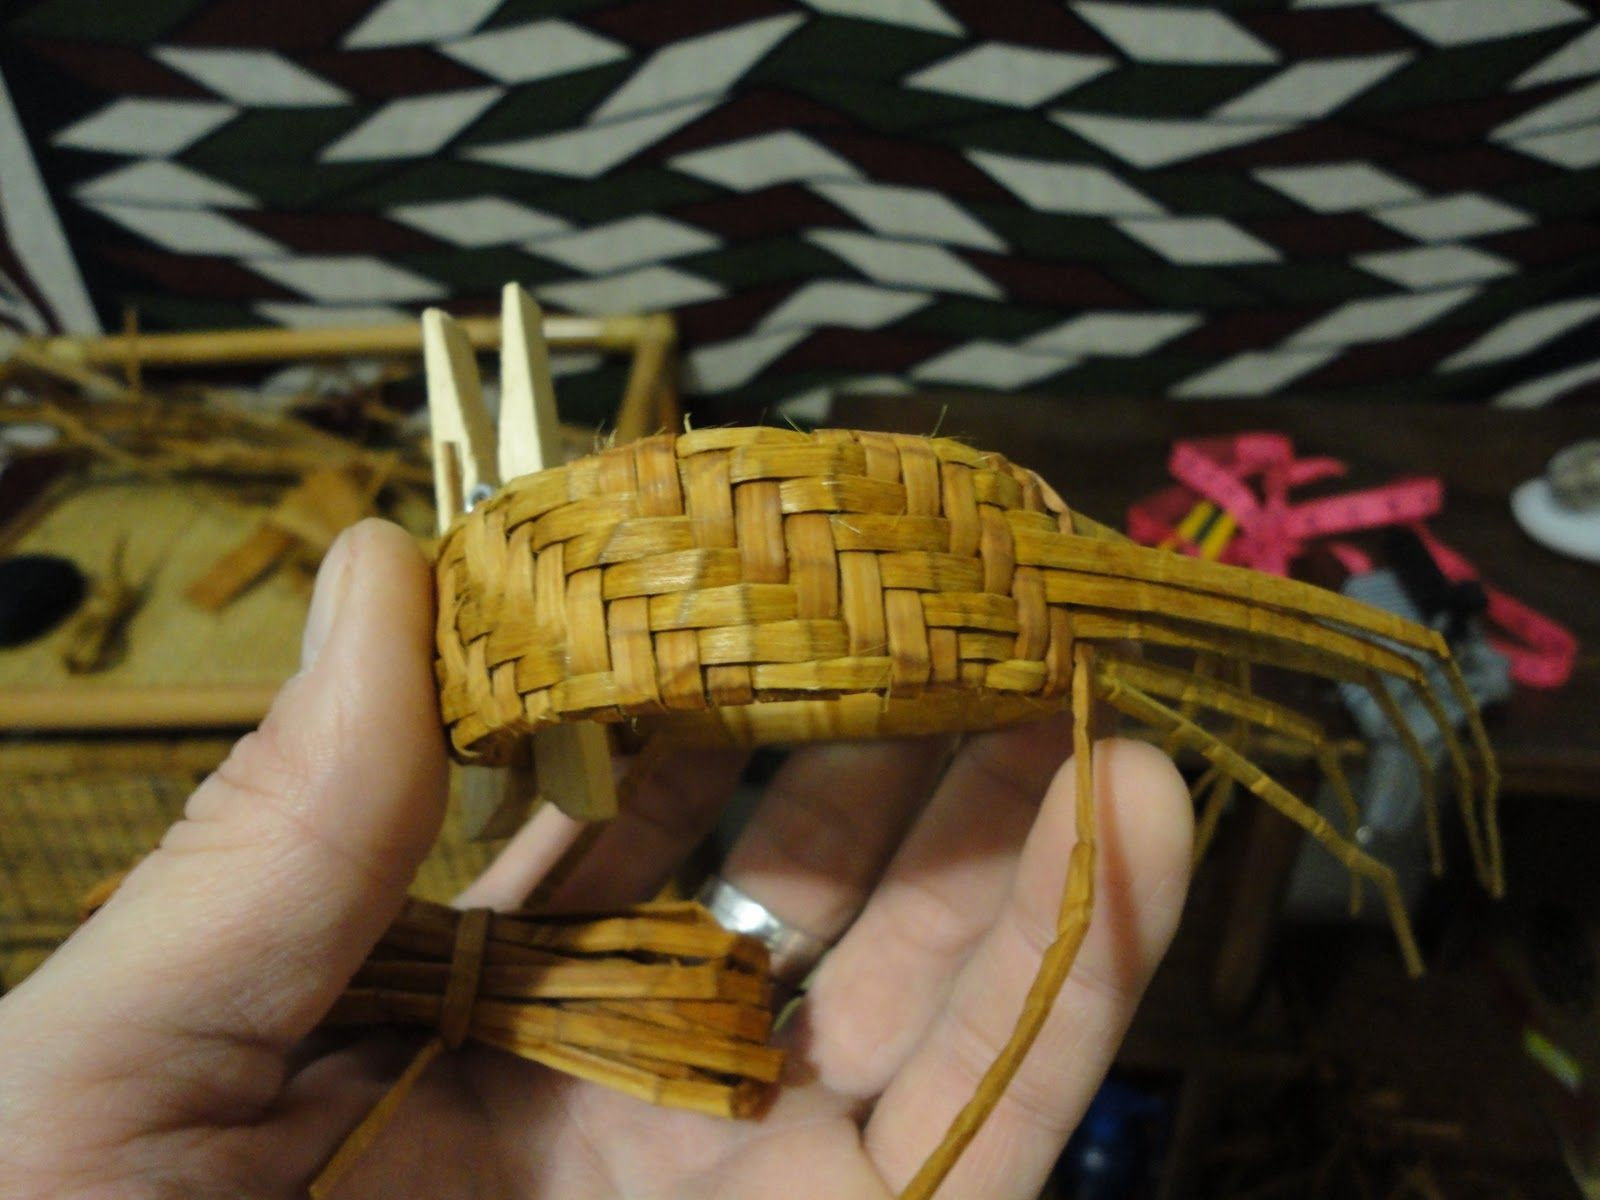 Weaving the original basket of pine needles with explanations and phased photos